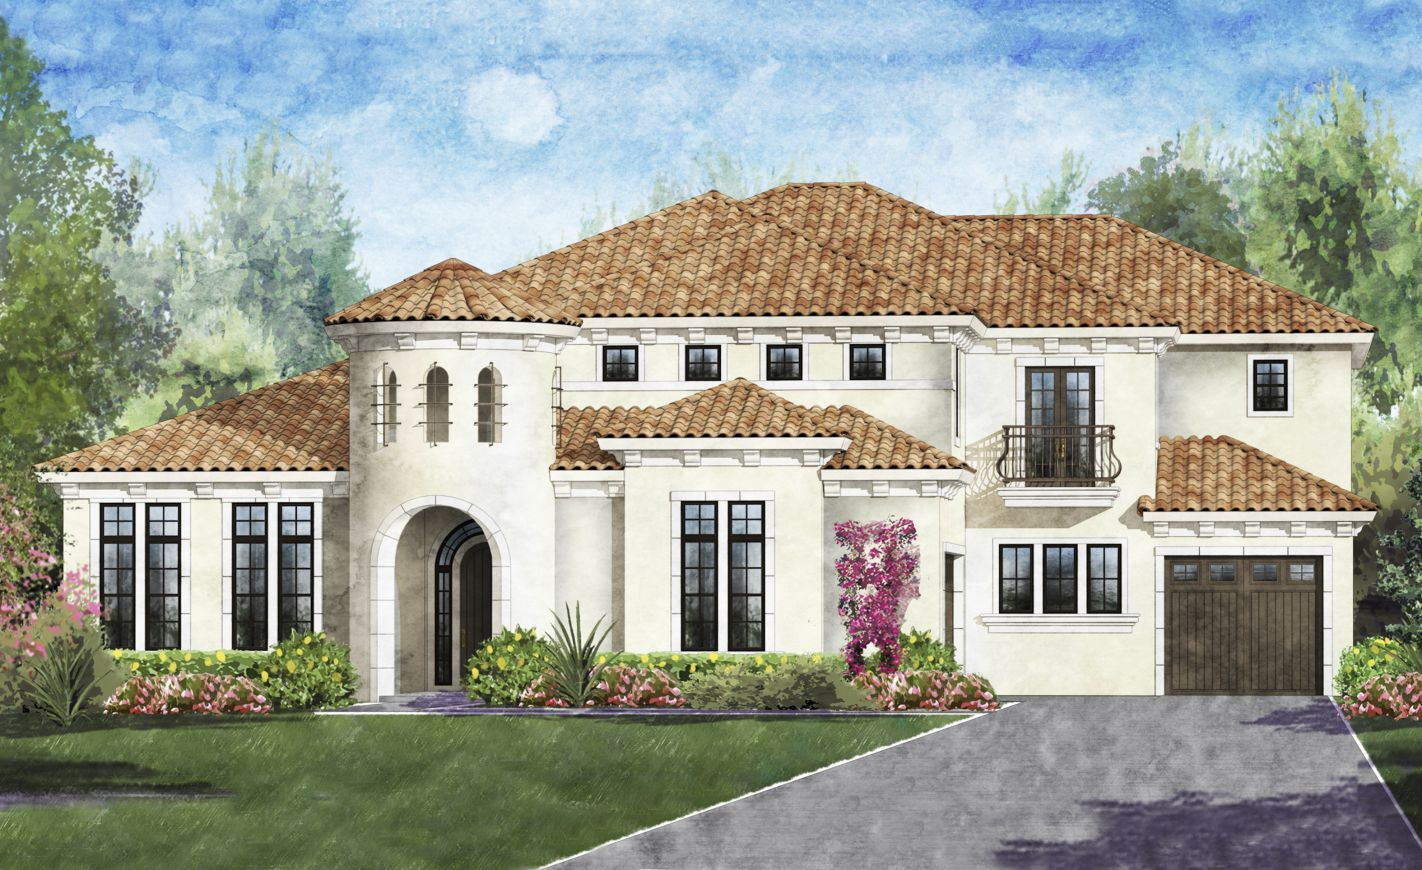 Unique la famille pour l Vente à Julington Creek - Vanderbilt 1000 West Dorchester Drive St. Johns, Florida 32259 United States